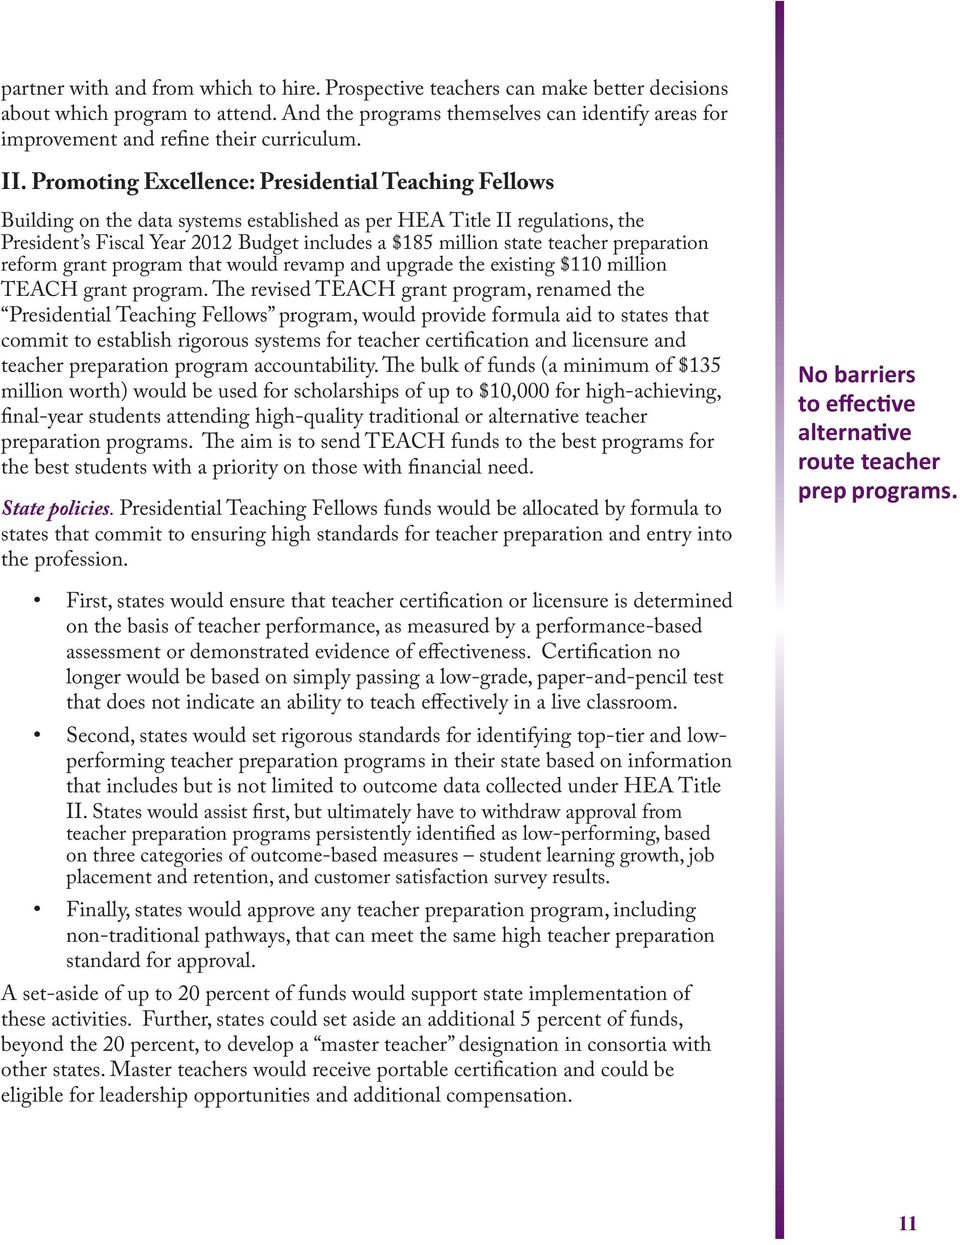 Promoting Excellence: Presidential Teaching Fellows Building on the data systems established as per HEA Title II regulations, the President s Fiscal Year 2012 Budget includes a $185 million state